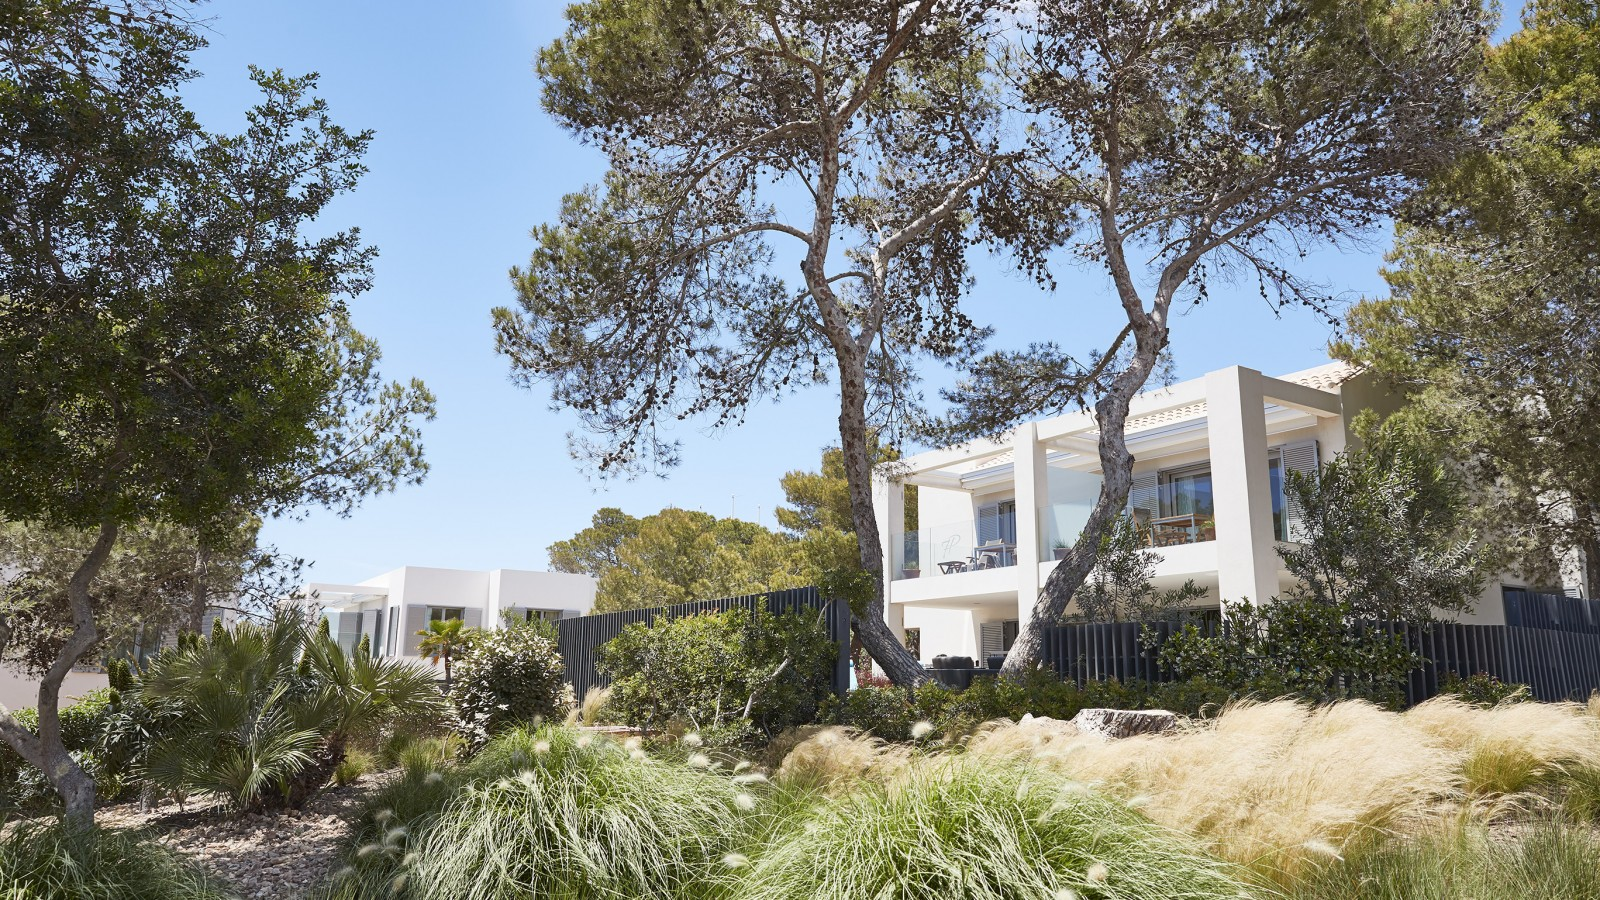 7 Pines Resort Ibiza, Ibizan Village Suites